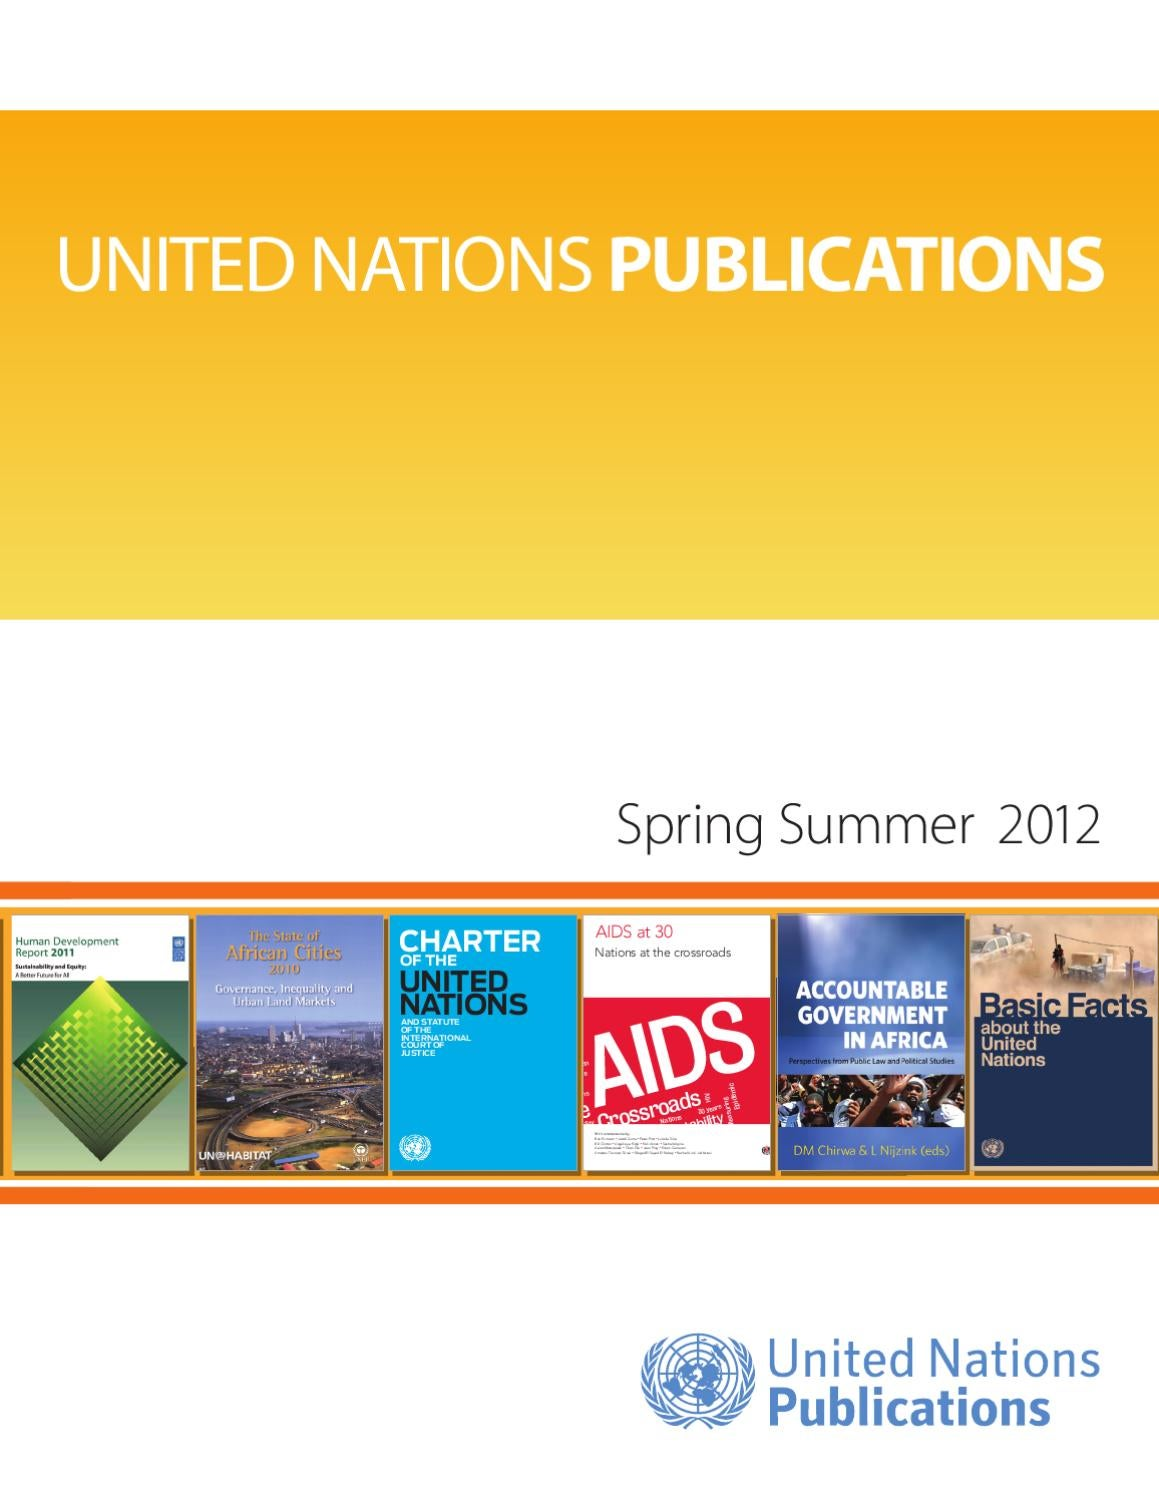 United Nations Catalogue by United Nations Publications issuu